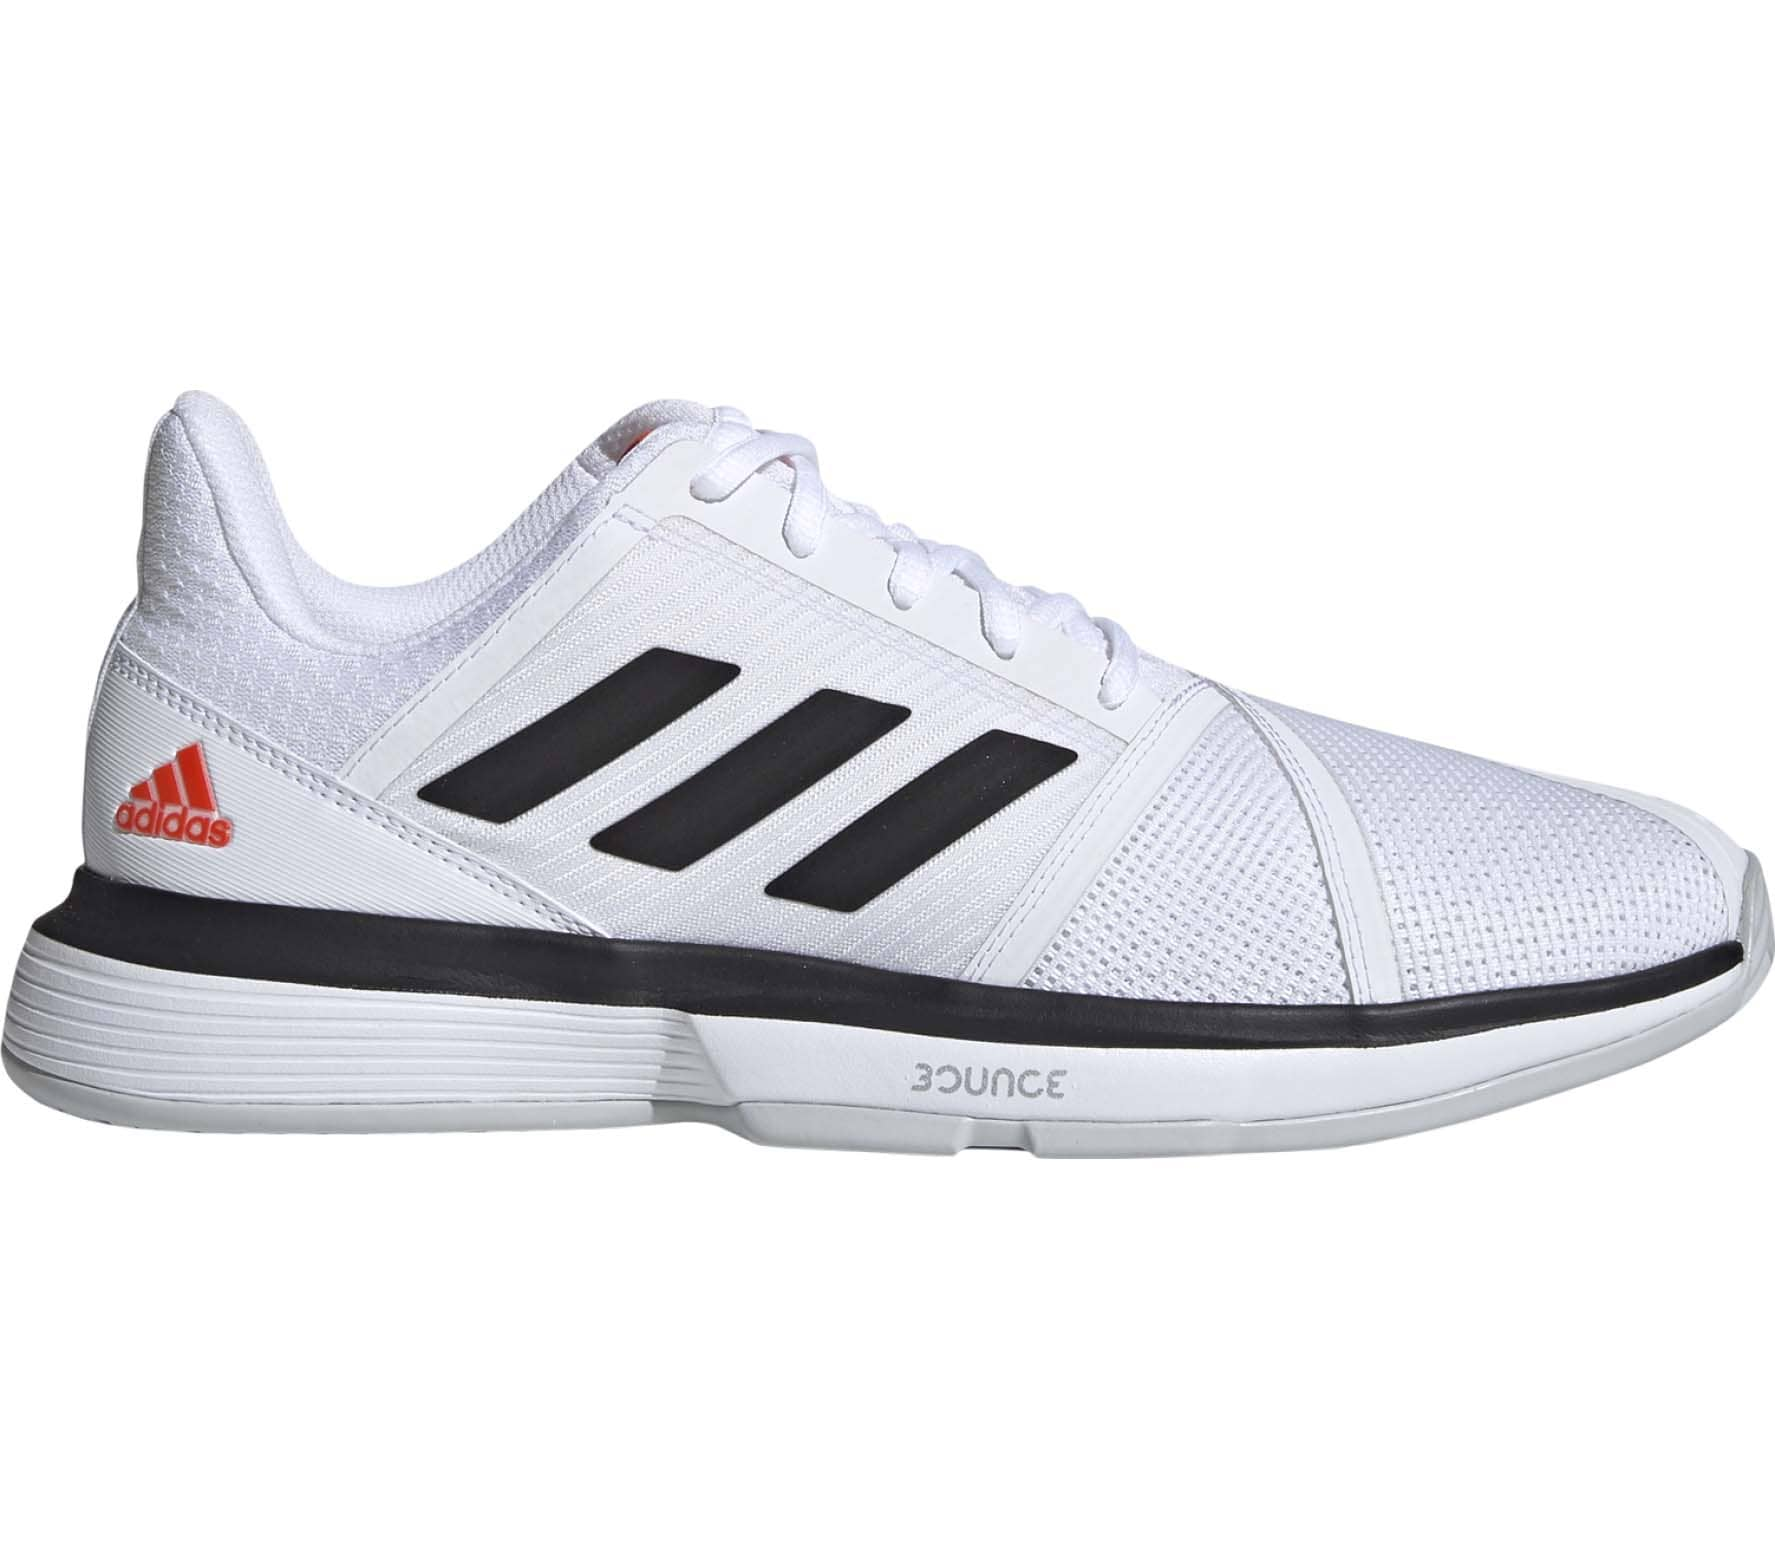 adidas Court Jam Bounce Men Tennis Shoes white